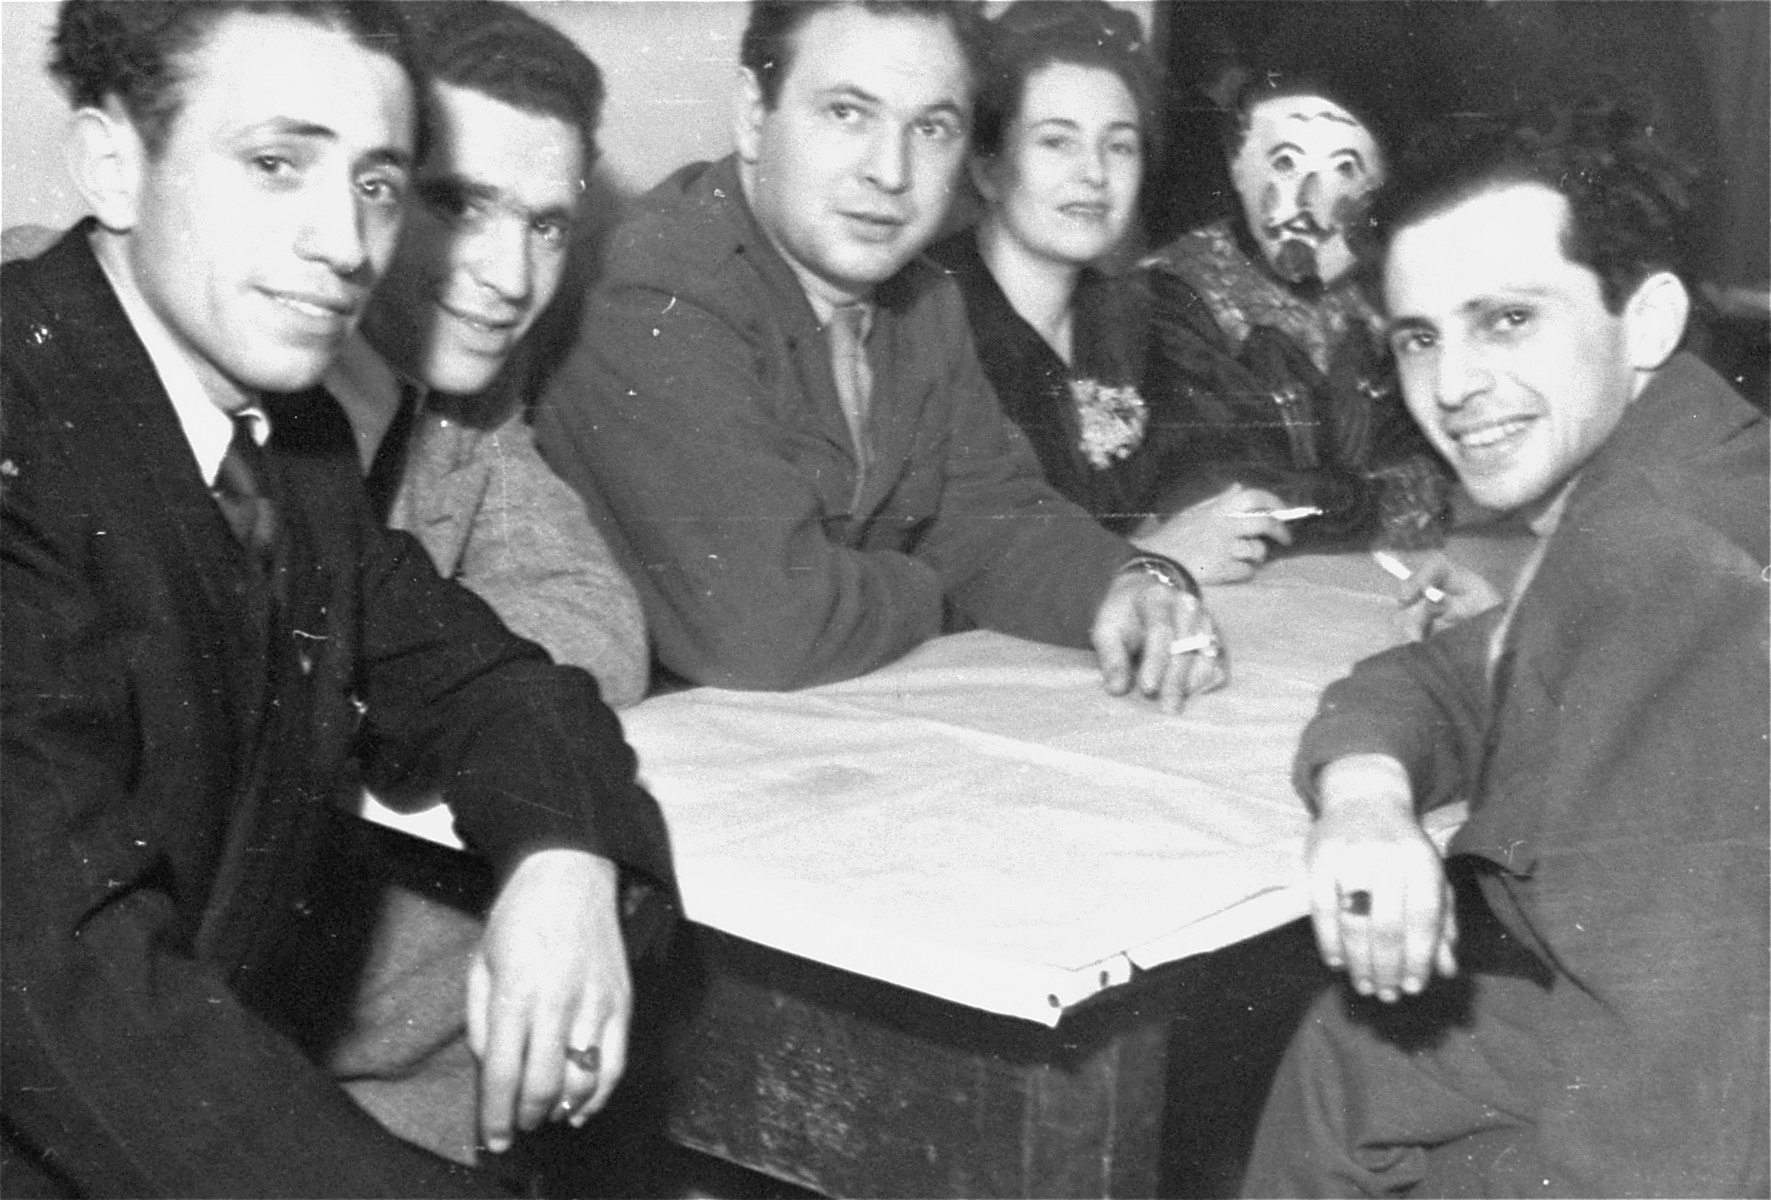 Neu Freimann director Saul Sorrin (center) sits at a table with a group of Jewish DPs at the Neu Freimann displaced persons camp.